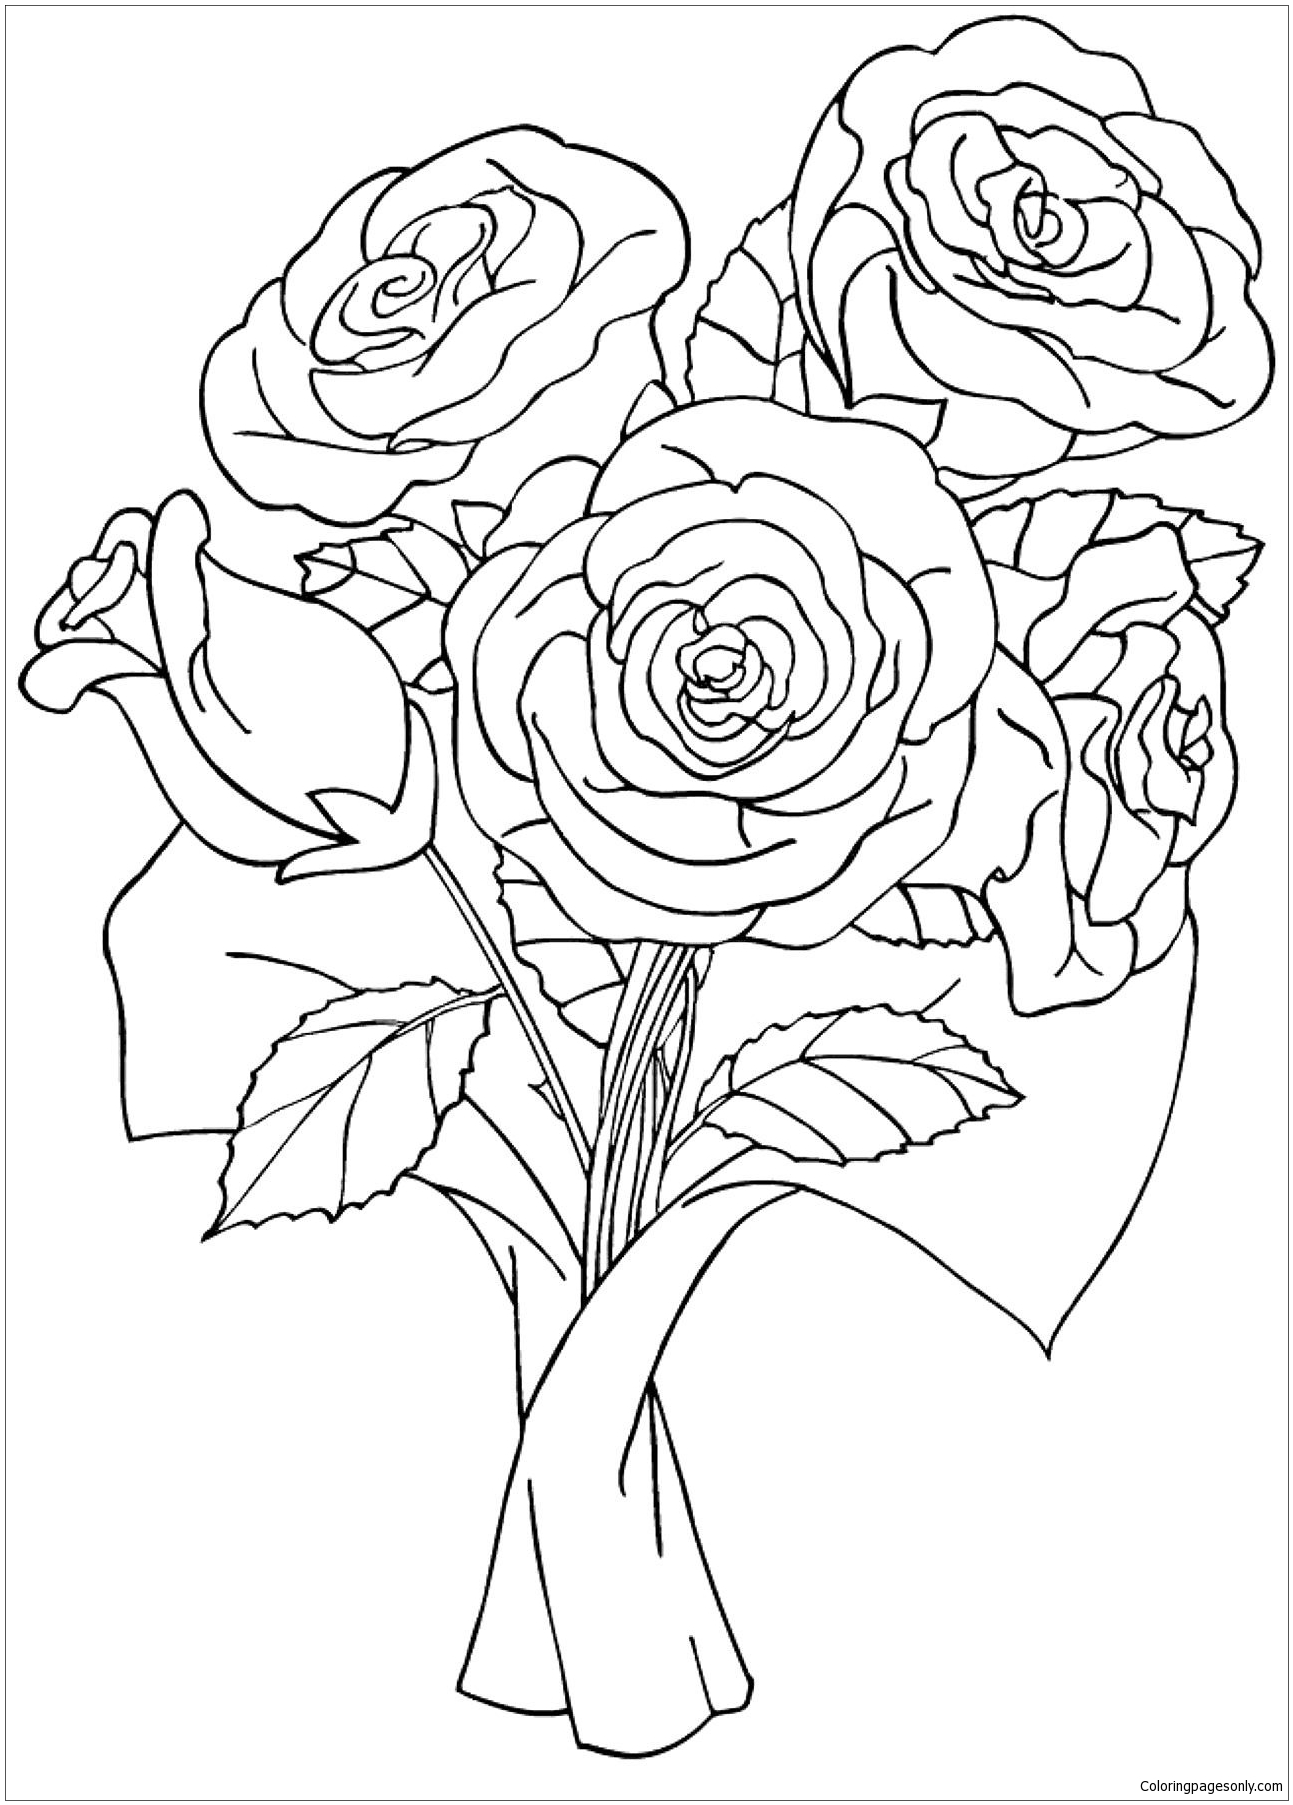 coloring picture rose roses flower coloring pages flower coloring pages free rose picture coloring